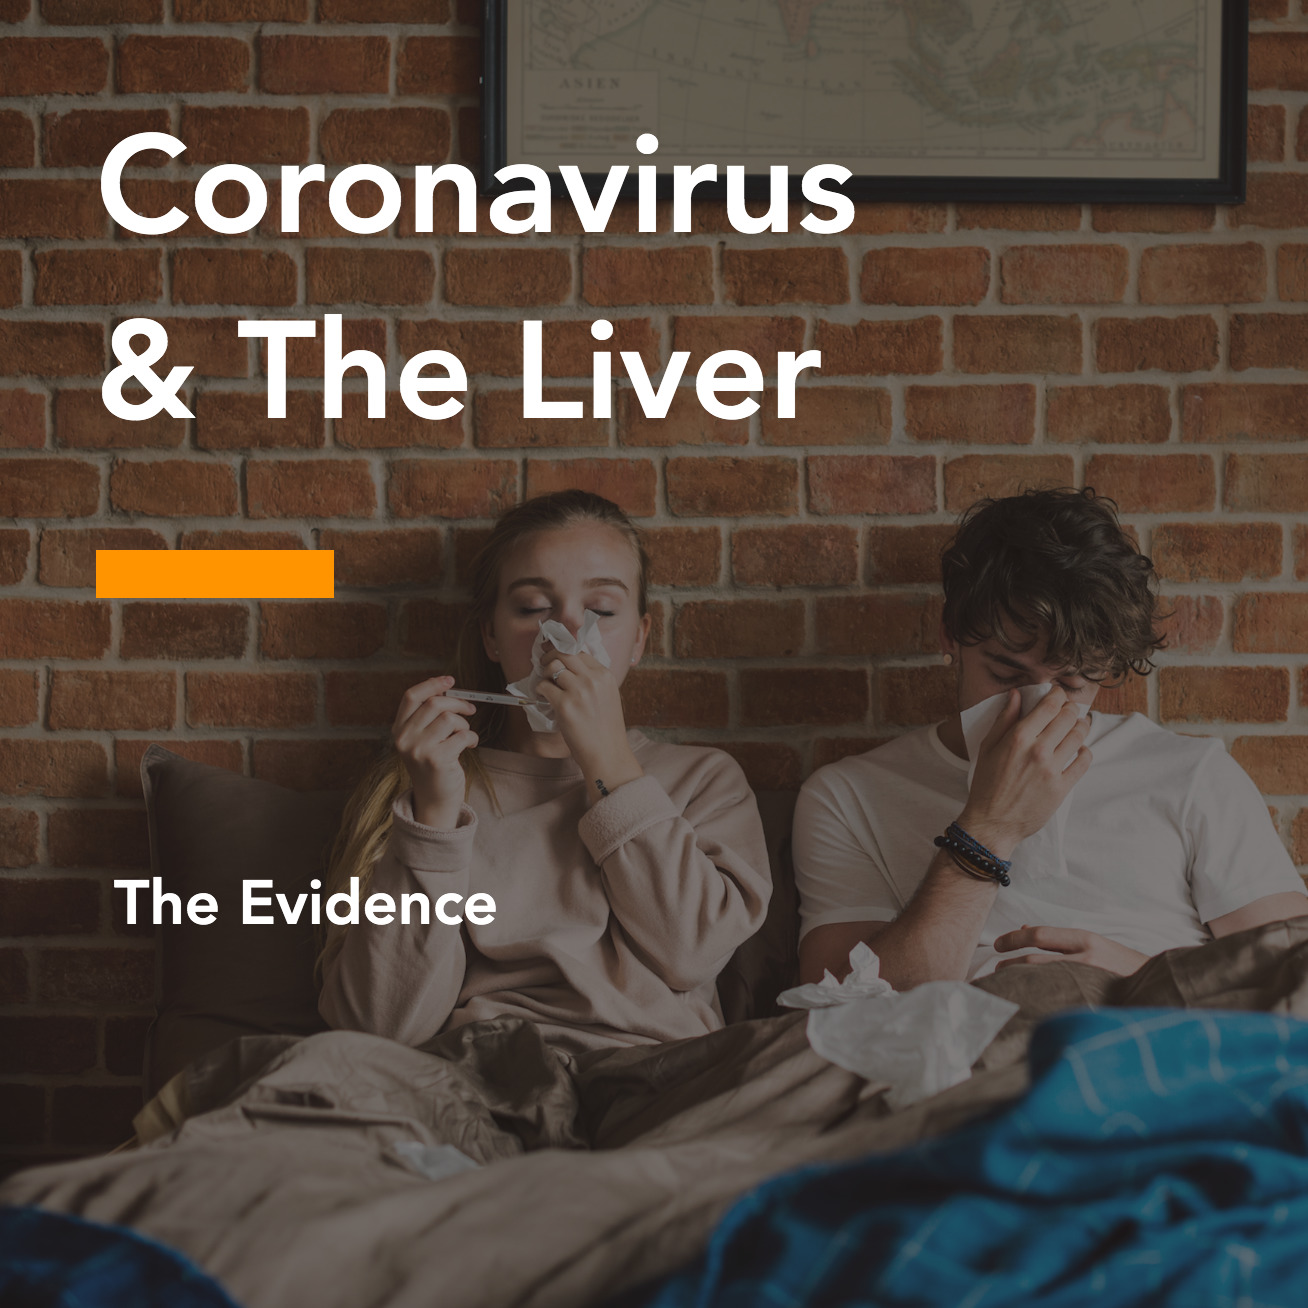 Coronavirus & The Liver: Data & Studies